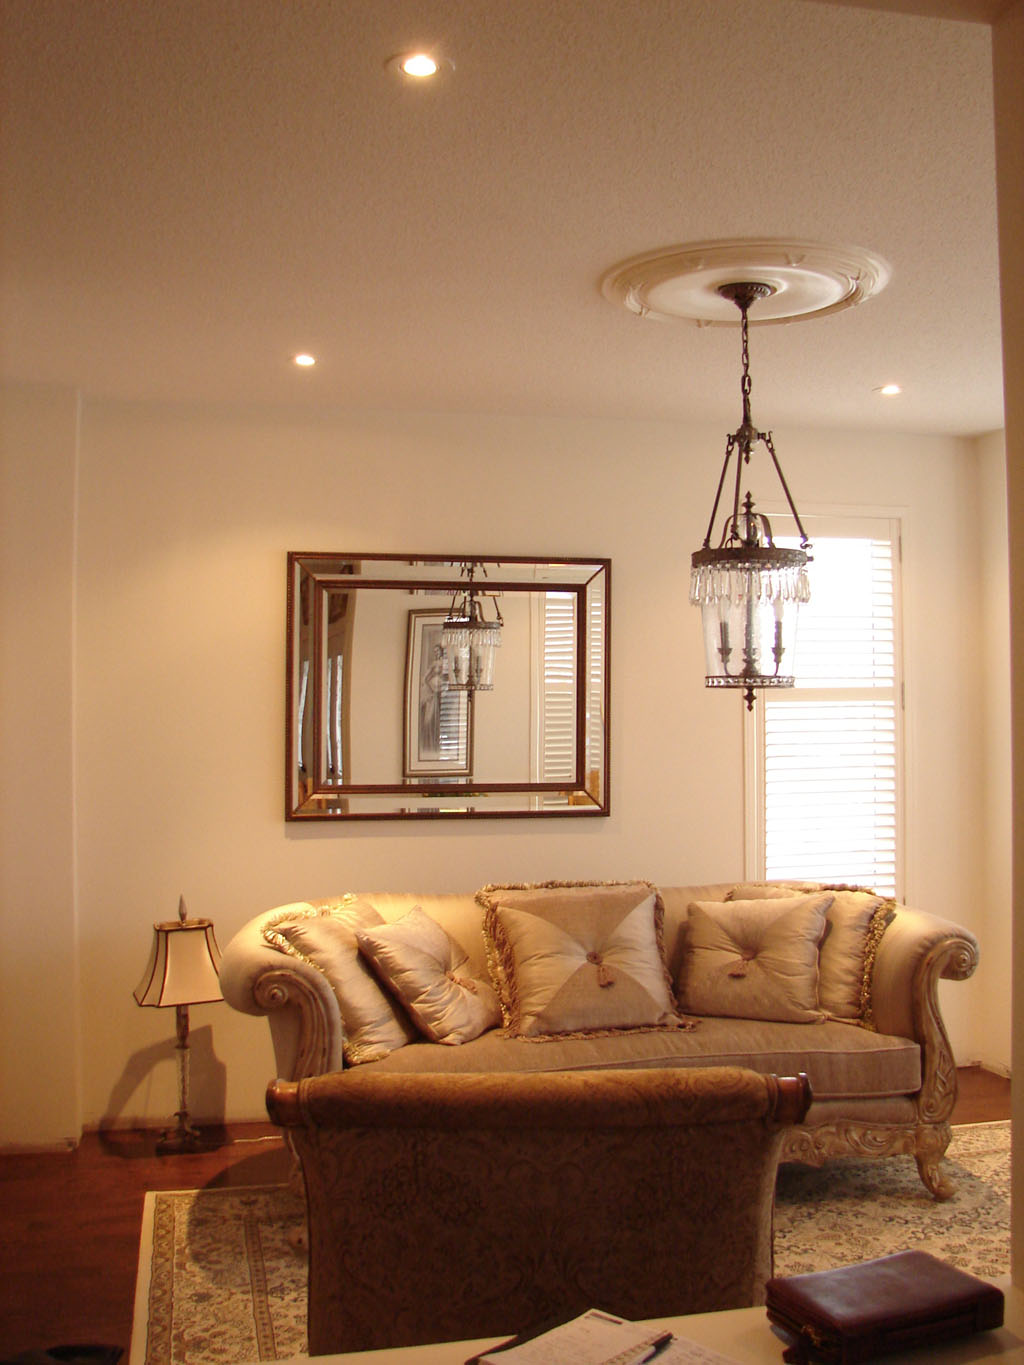 Samples Of Works By Vicamp Electrical Services